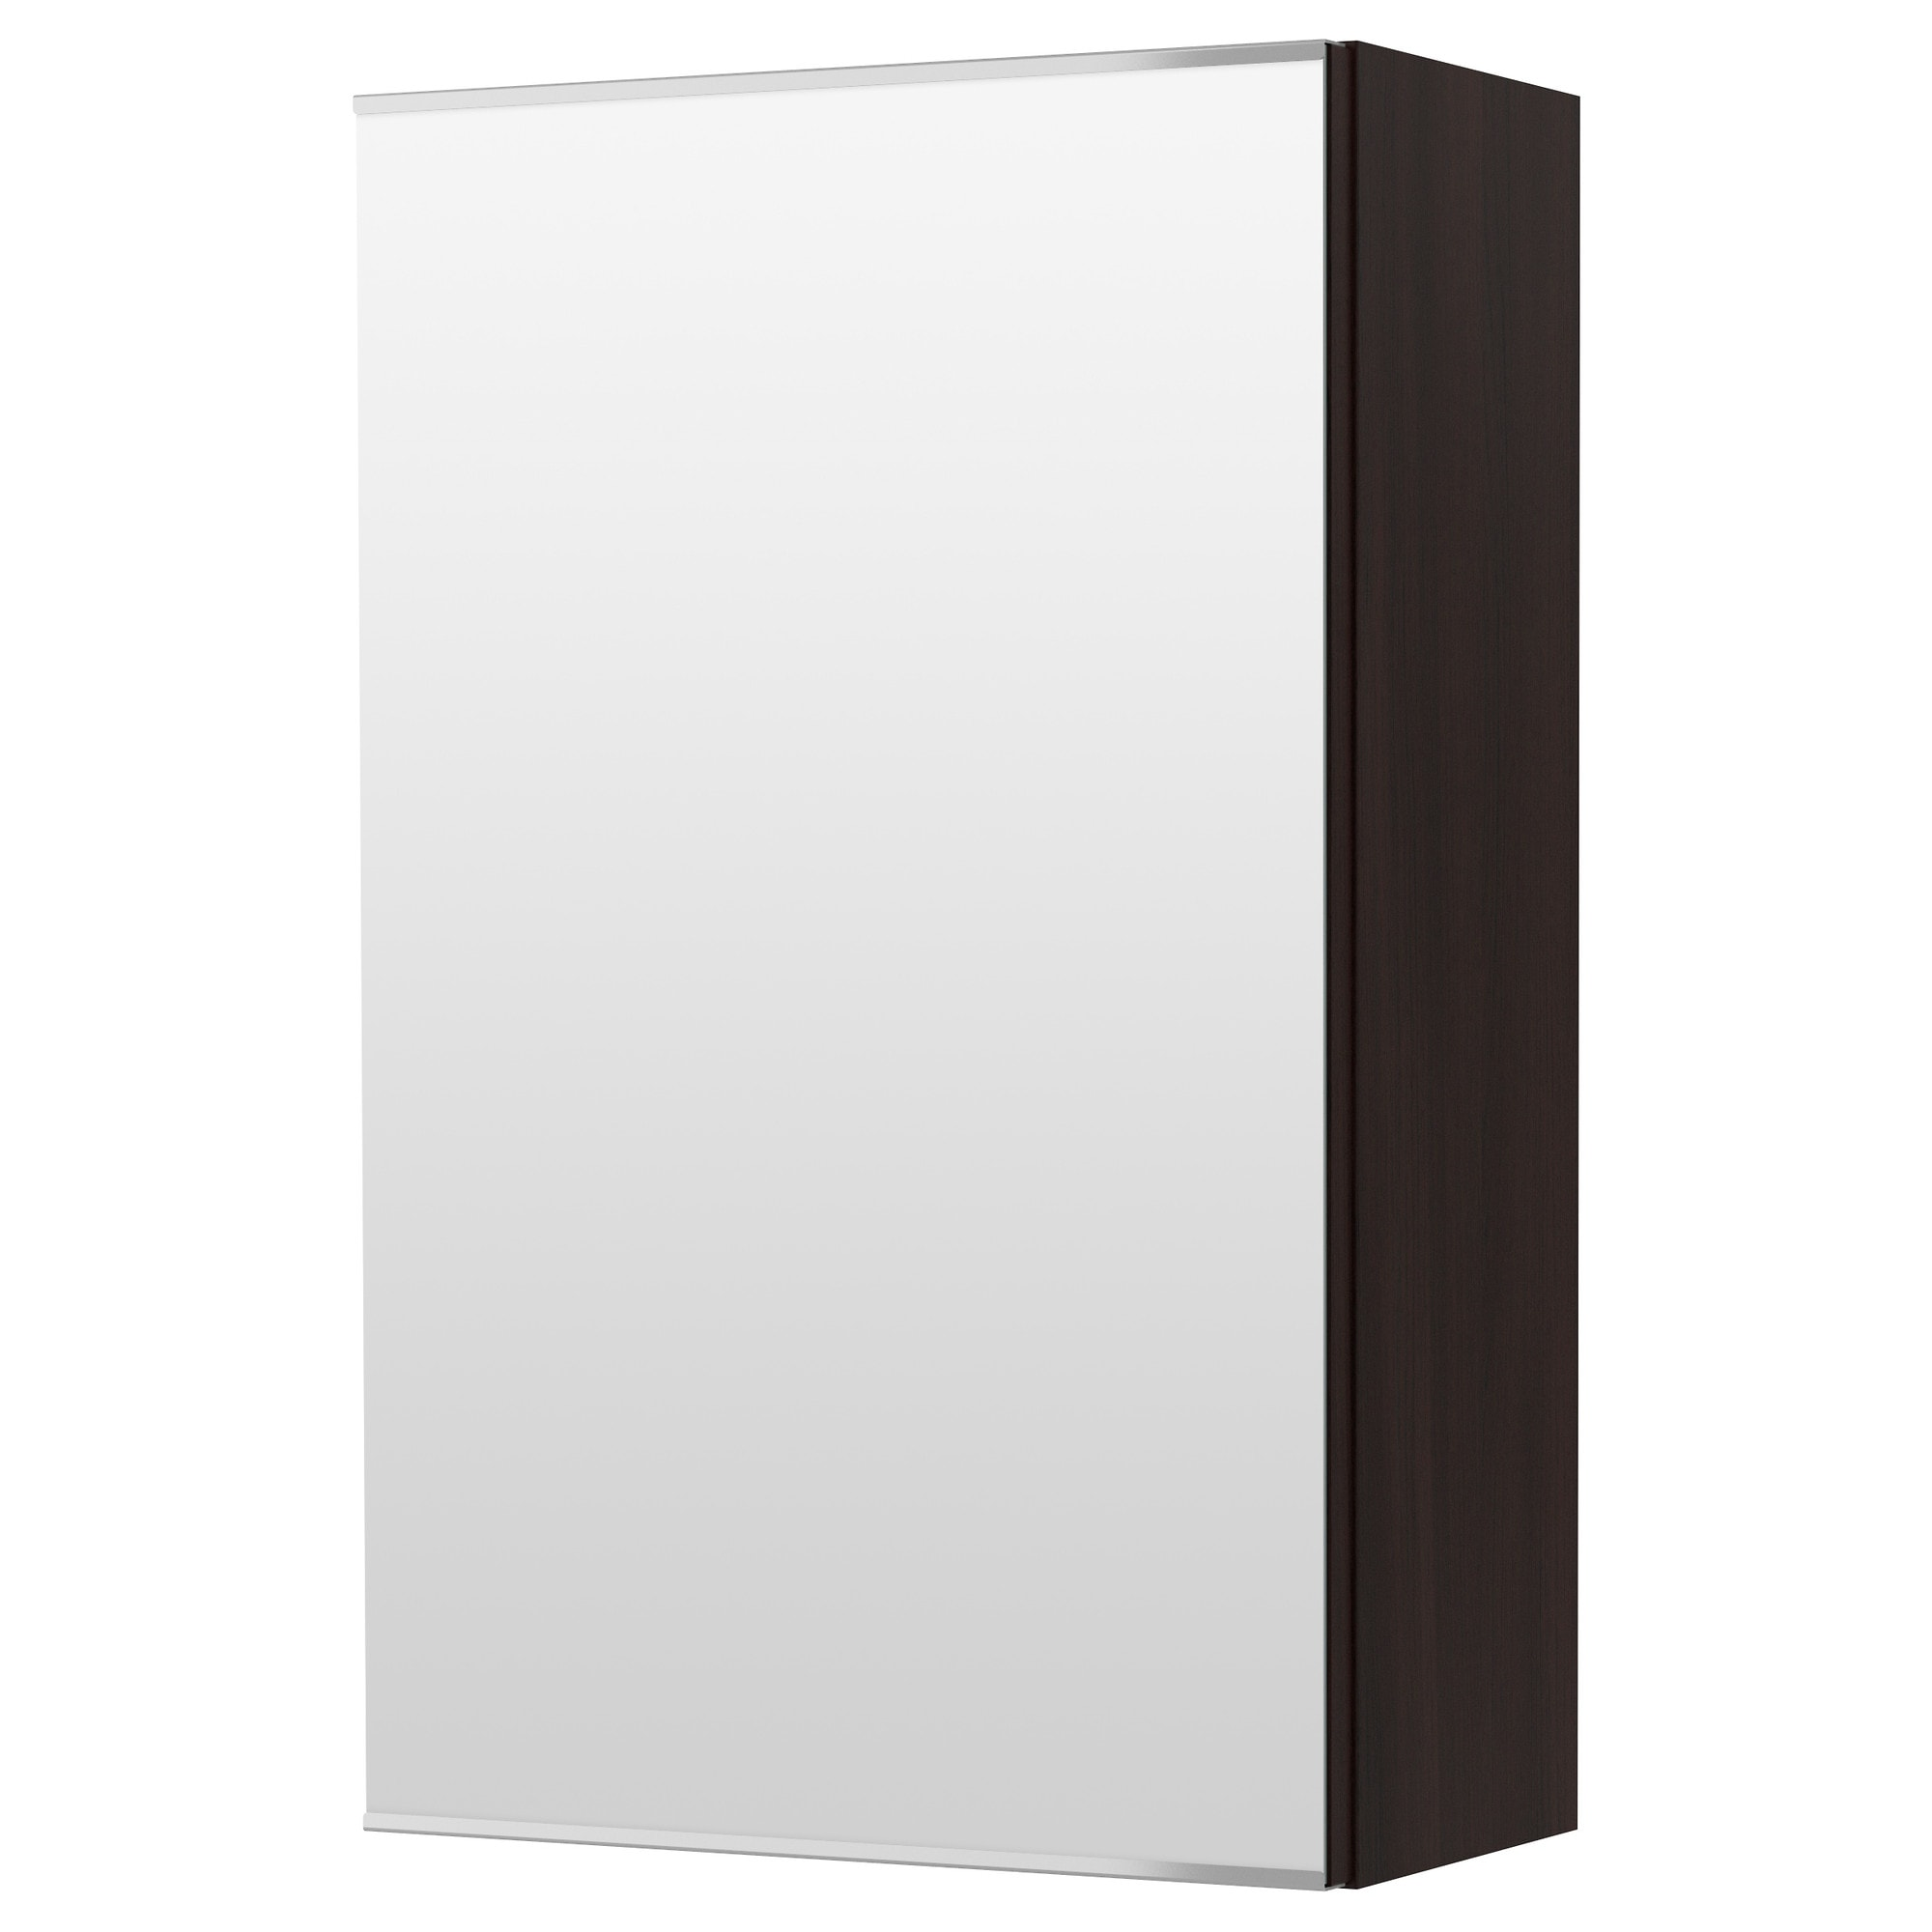 LILLNGEN Mirror Cabinet With 1 Door